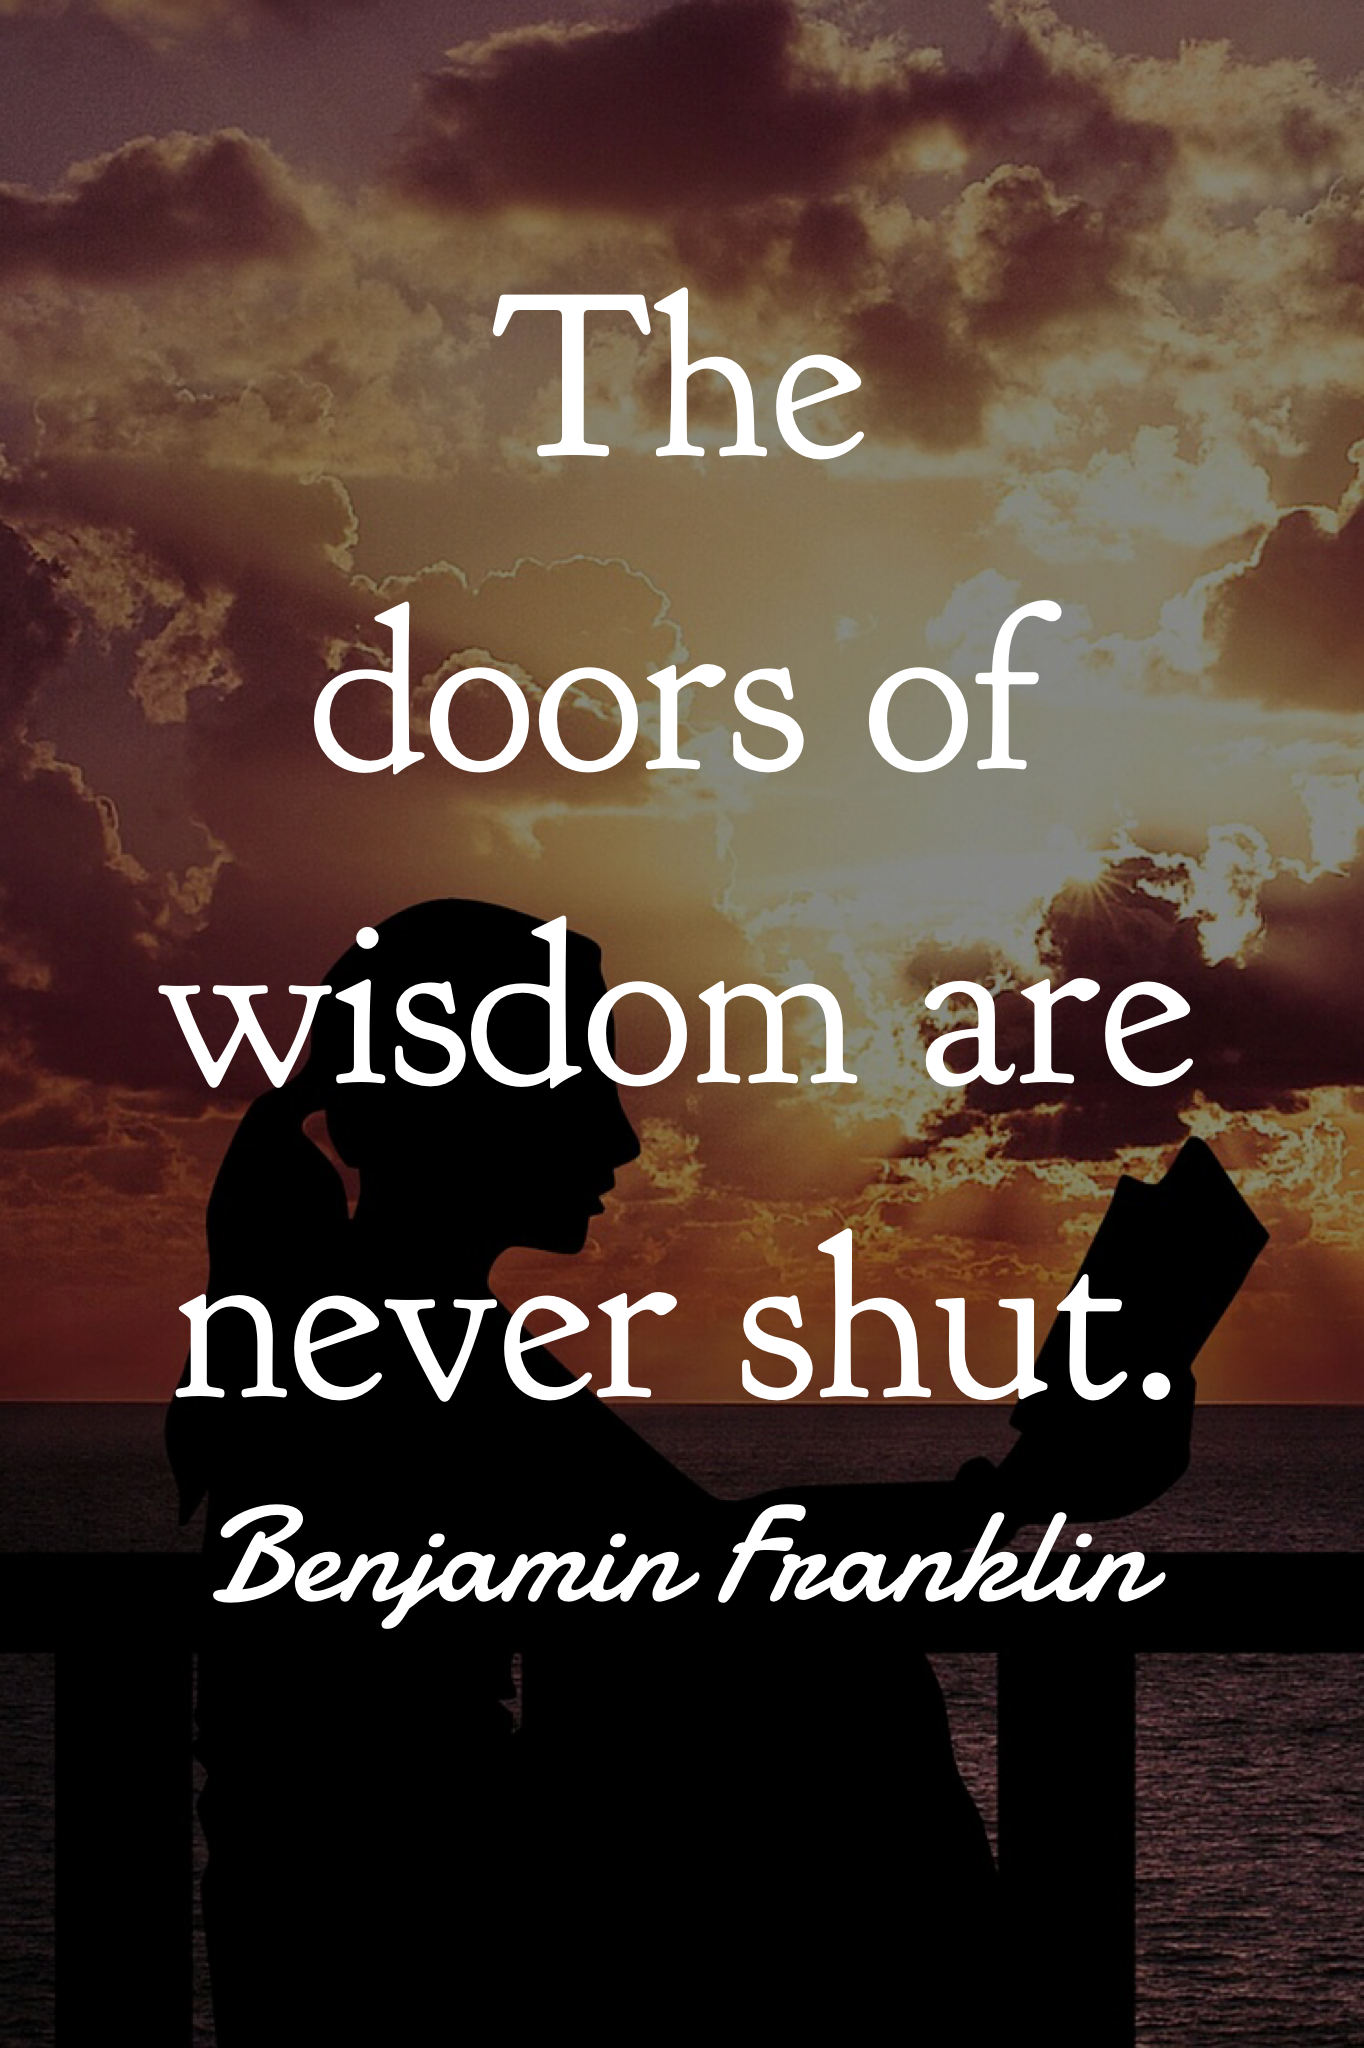 25 Timeless Quotes From Benjamin Franklin Insightful Quotes Wisdom Quotes Wonder Quotes